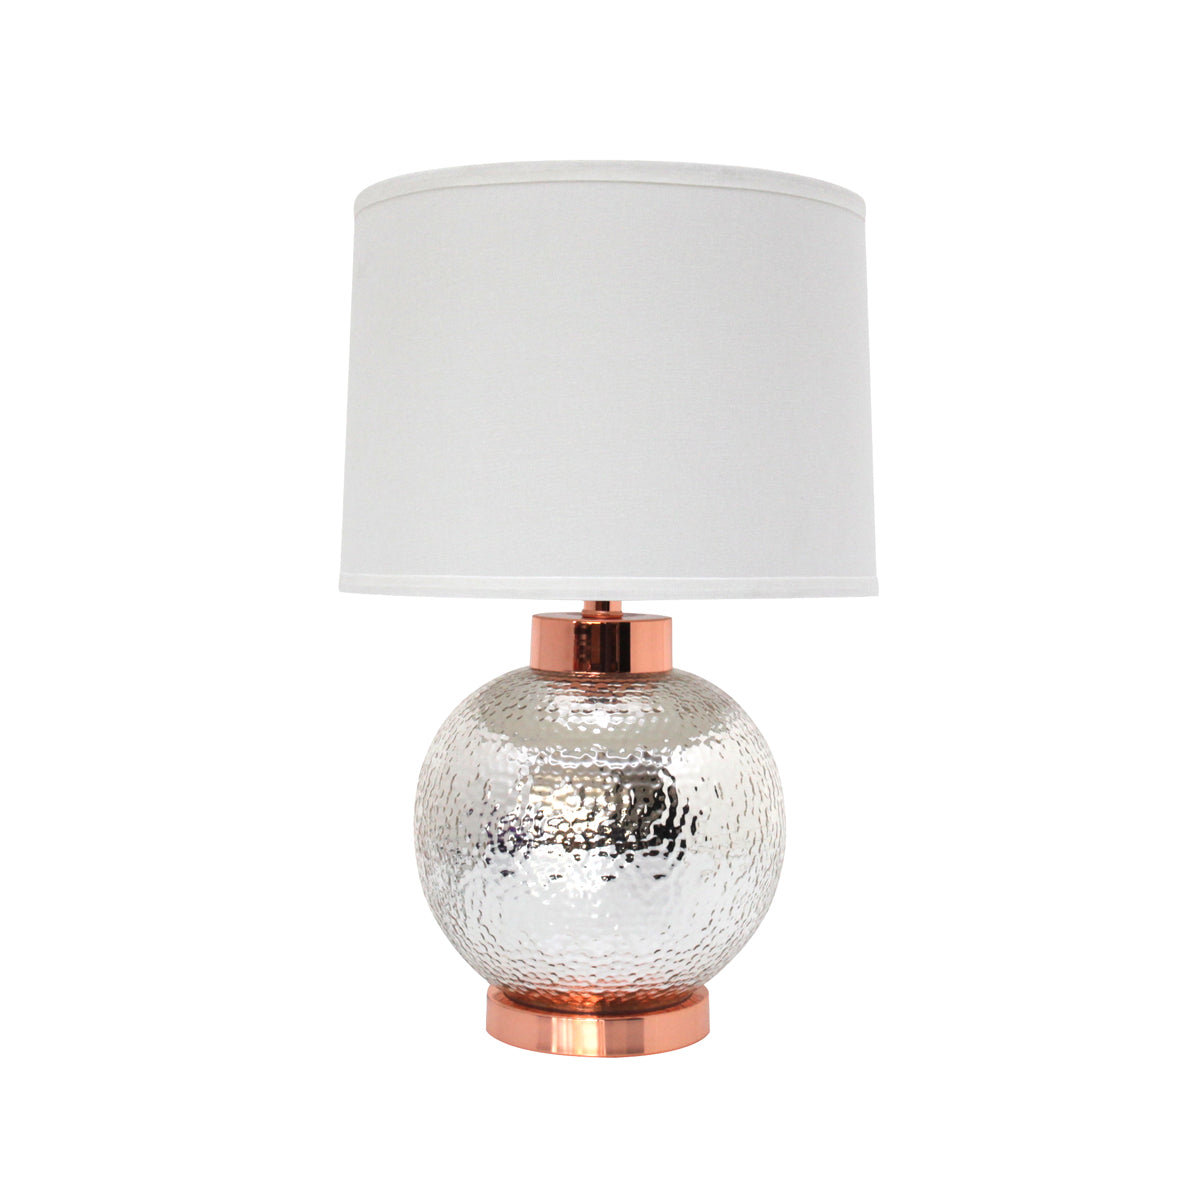 Lumiere Ball Table Lamp